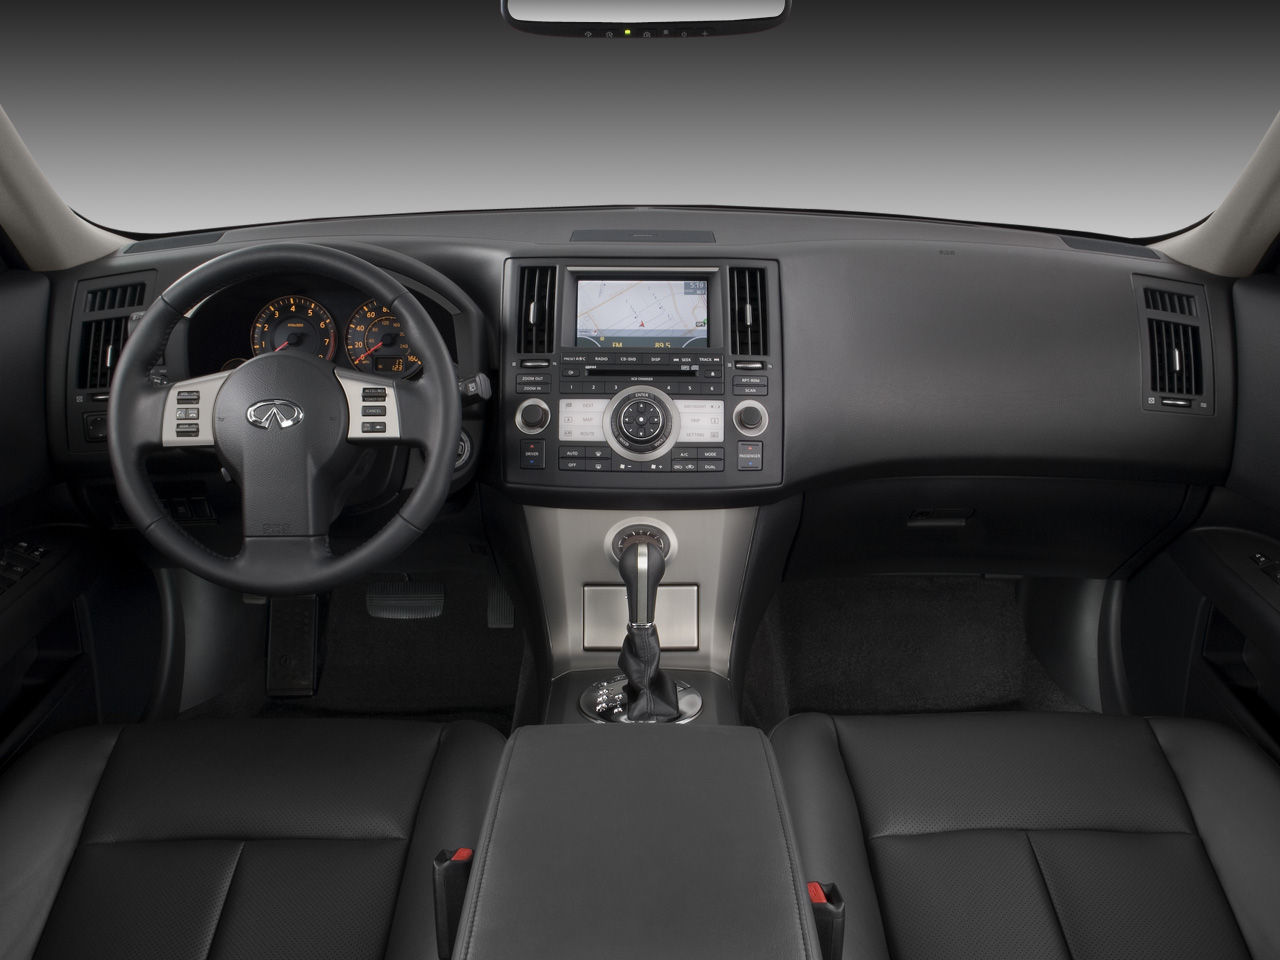 2003 infiniti fx45 interior choice image hd cars wallpaper 2008 infiniti fx45 information and photos zombiedrive 2008 infiniti fx45 16 infiniti fx45 16 vanachro choice vanachro Images